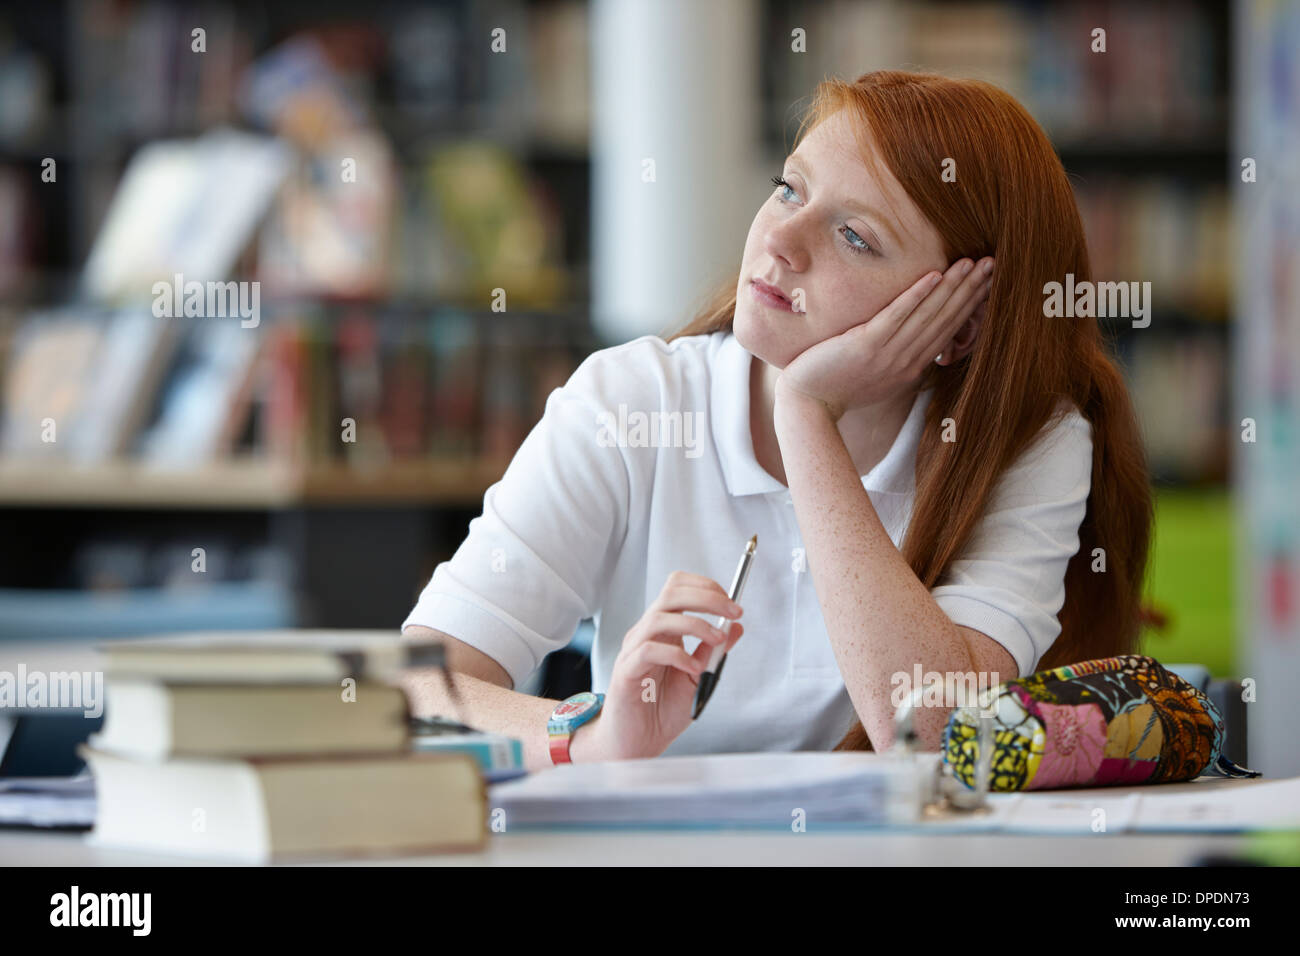 Portrait of teenage girl daydreaming in library - Stock Image